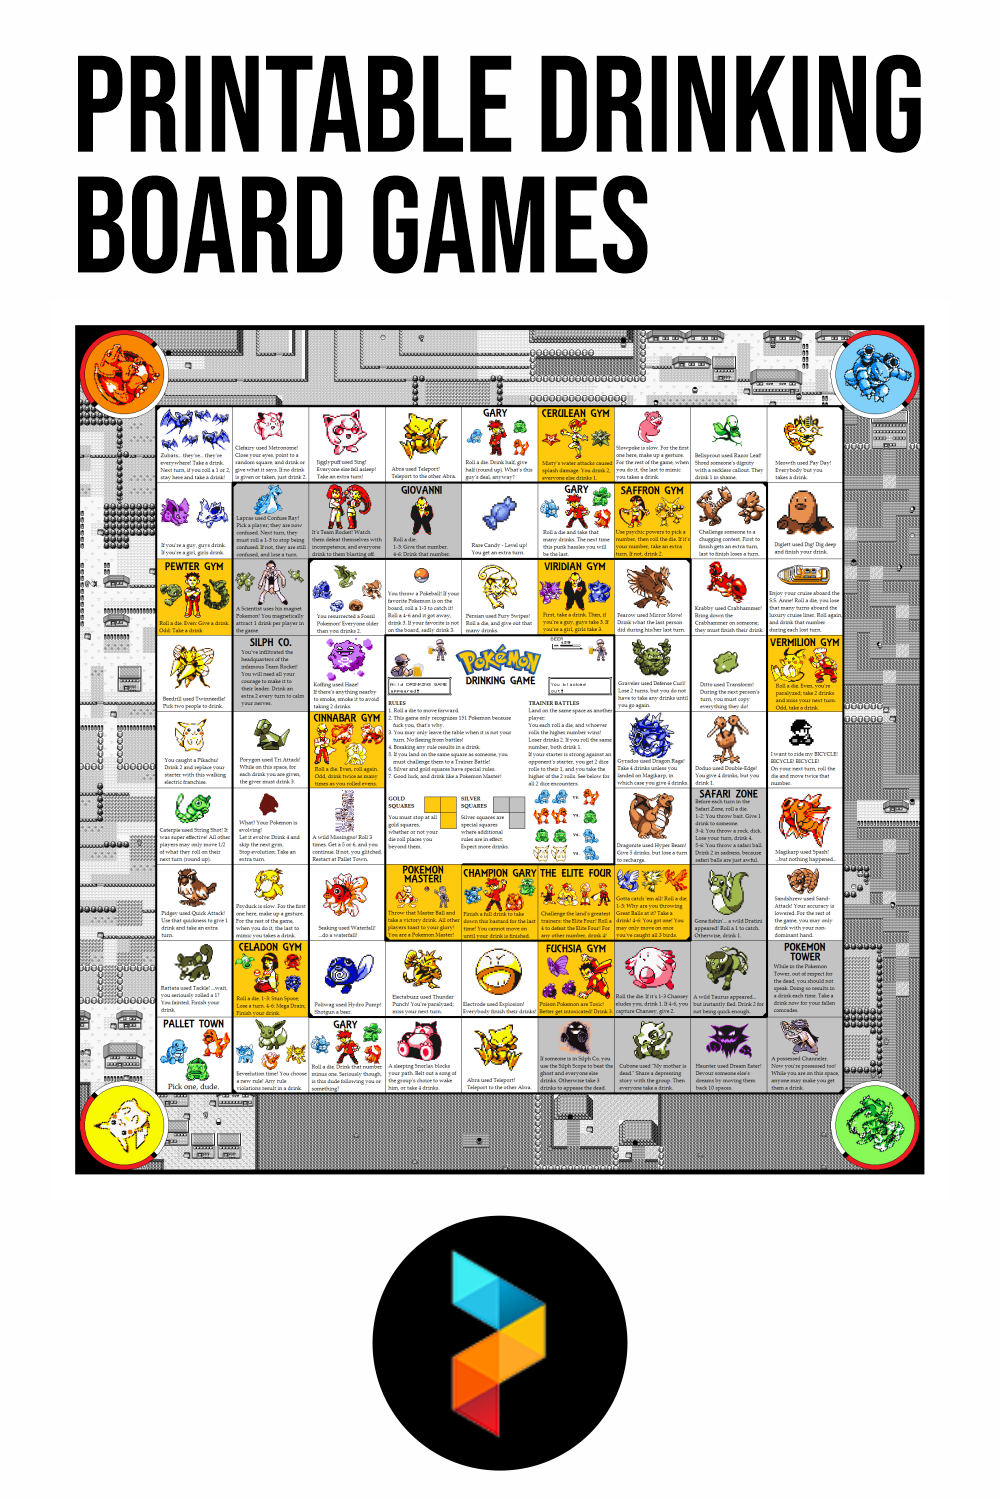 Printable Drinking Board Games